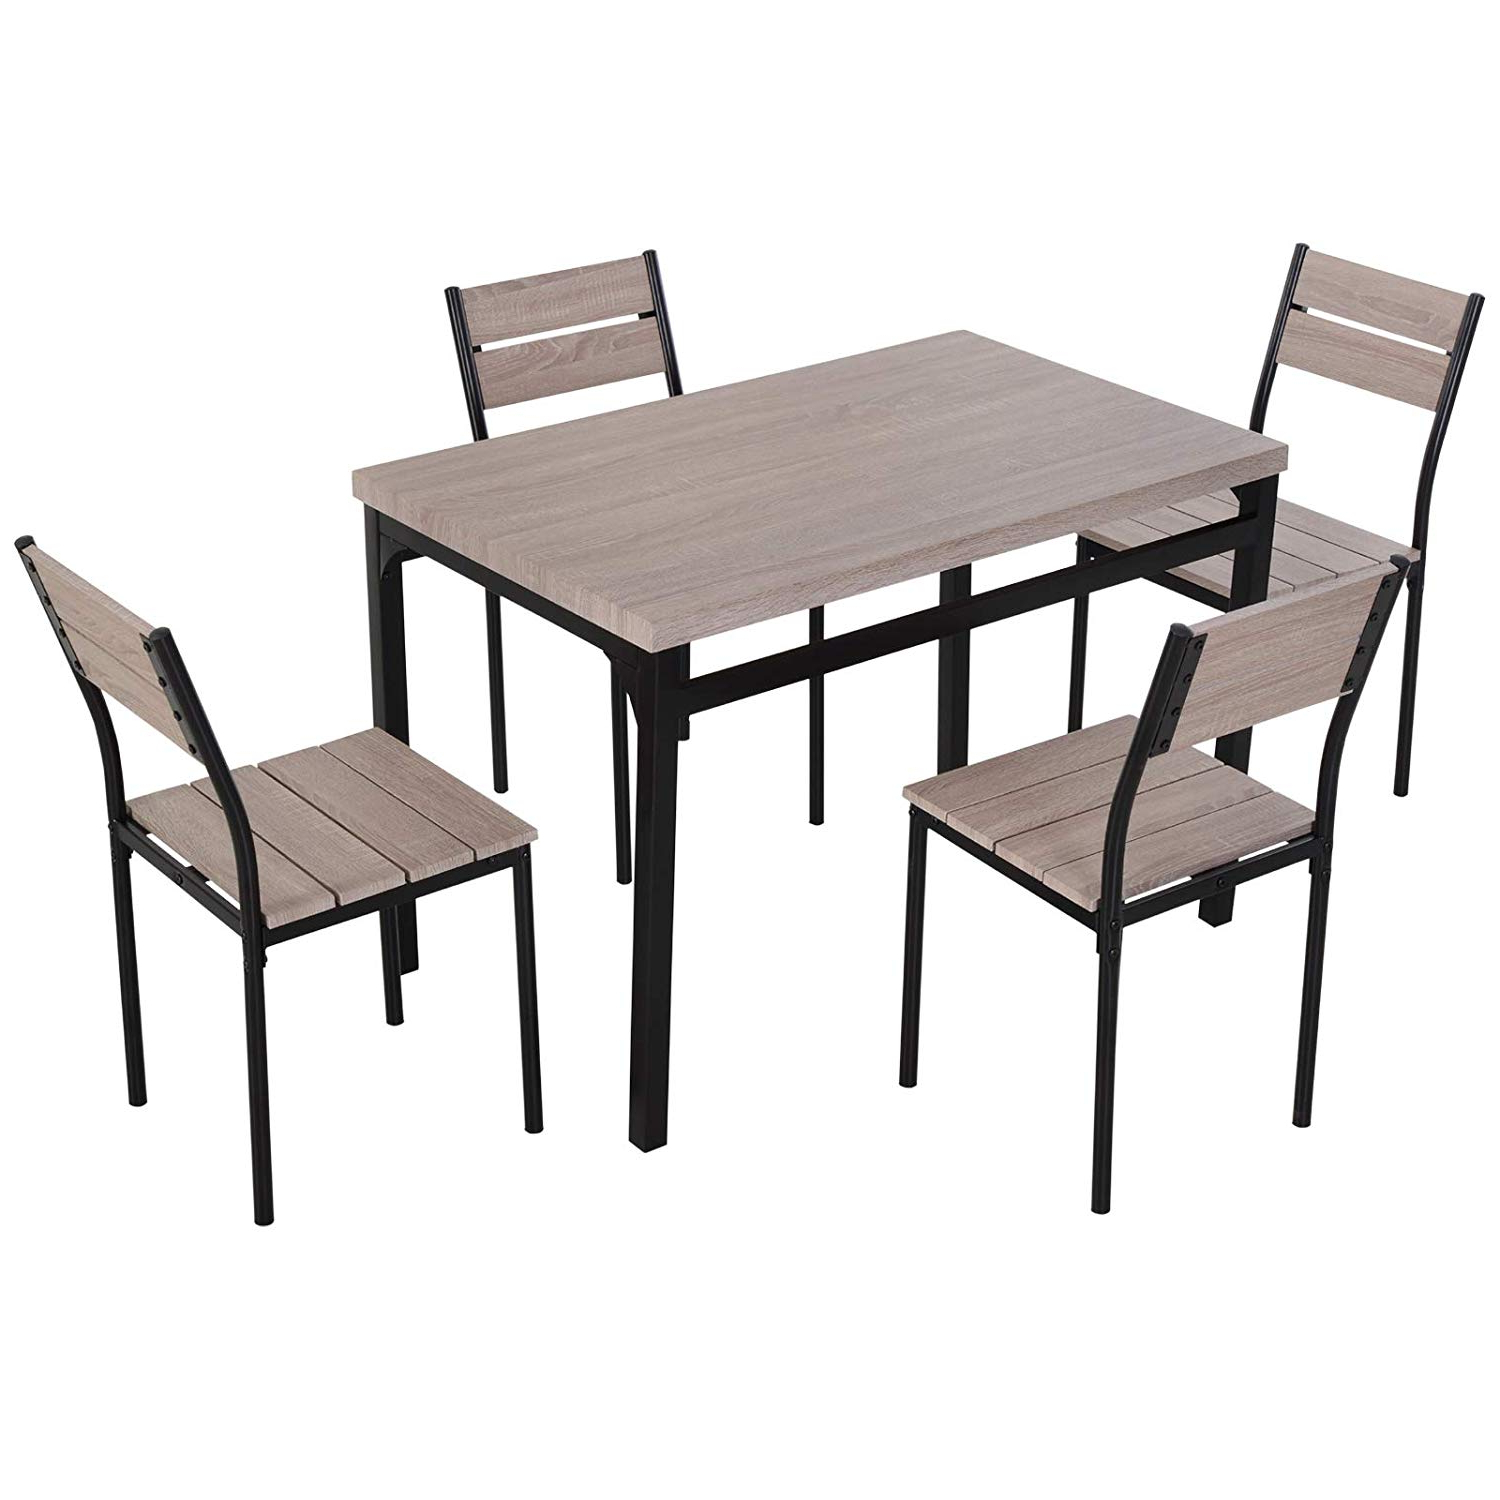 Preferred Transitional 4 Seating Drop Leaf Casual Dining Tables With Homcom 5 Piece Transitional Style Dining Room Table Set With Chairs (View 14 of 30)